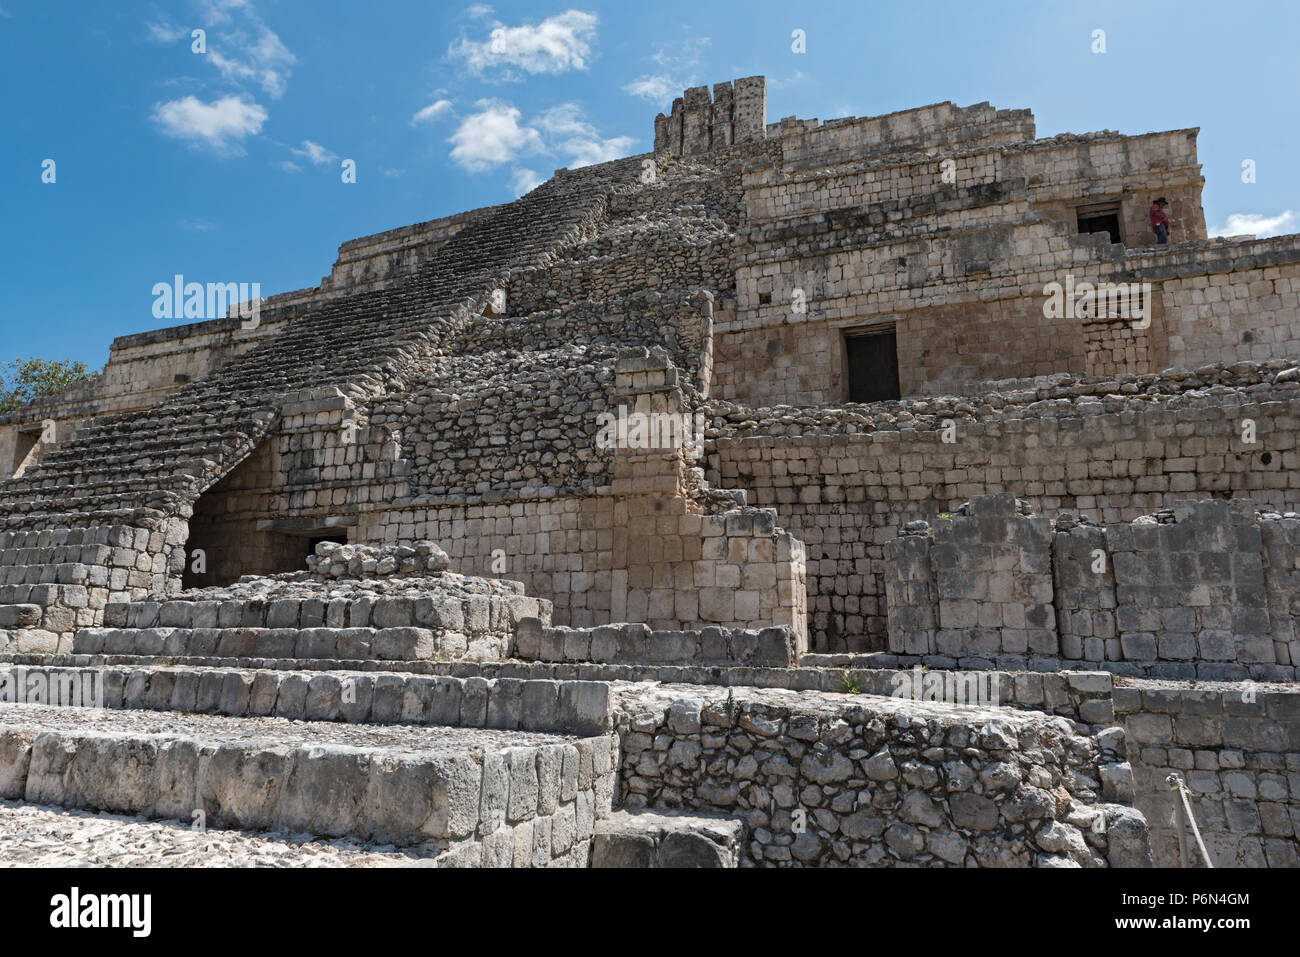 Ruins of the ancient Mayan city of Edzna near campeche, mexico - Stock Image